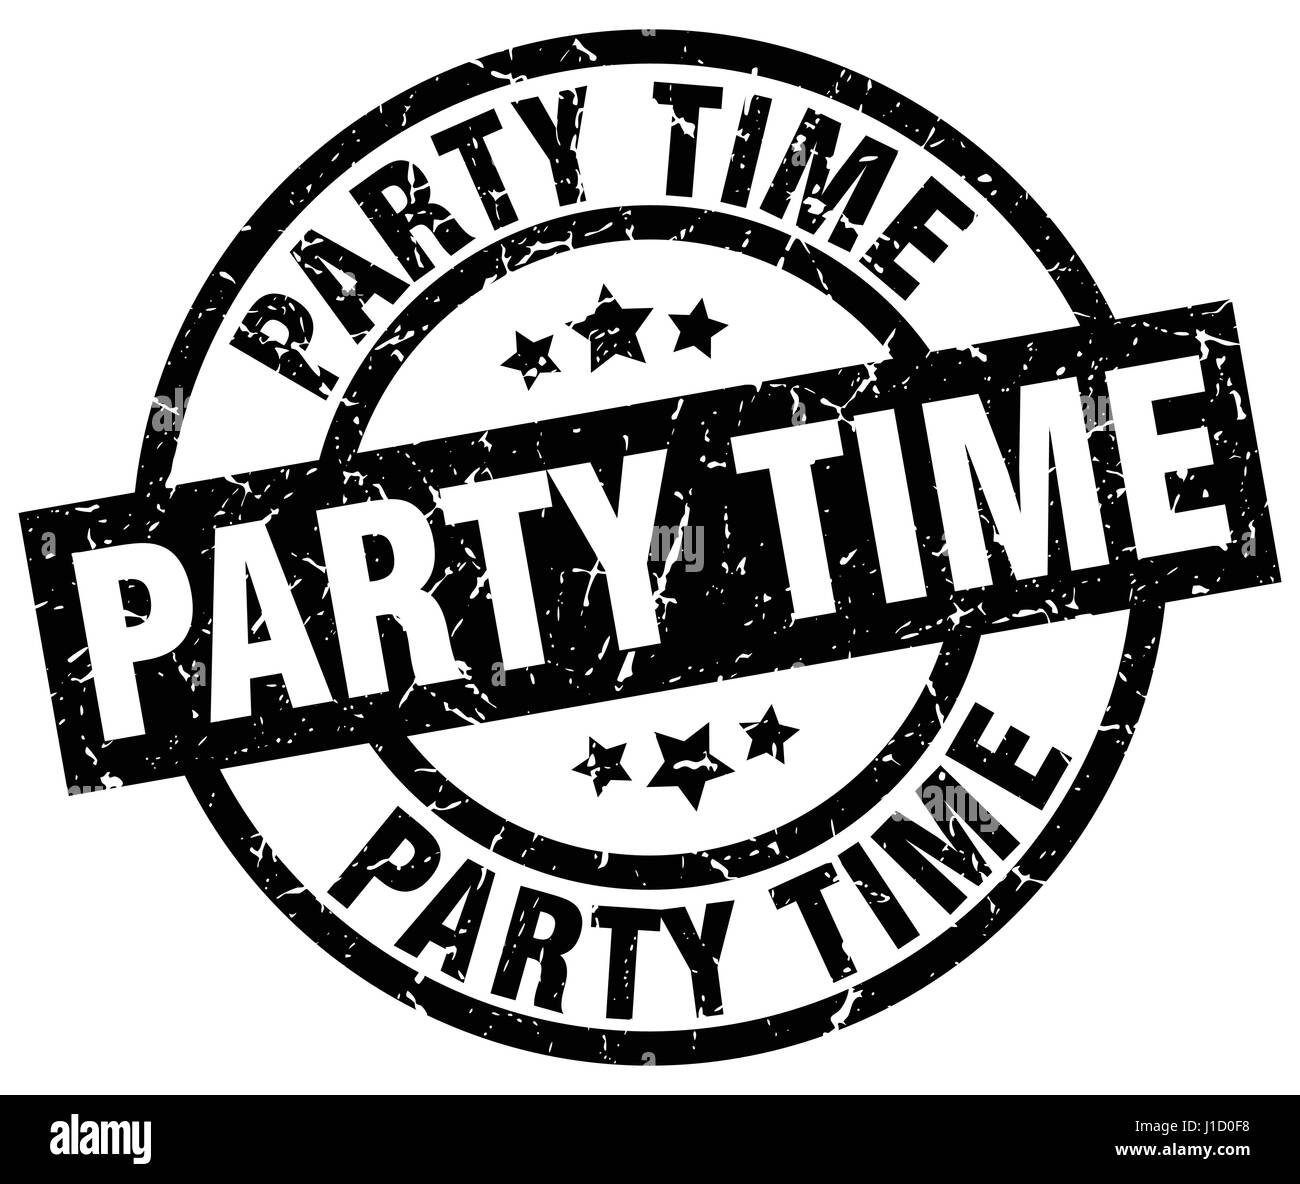 Party Time Party Time Round Grunge Black Stamp Stock Vector Art